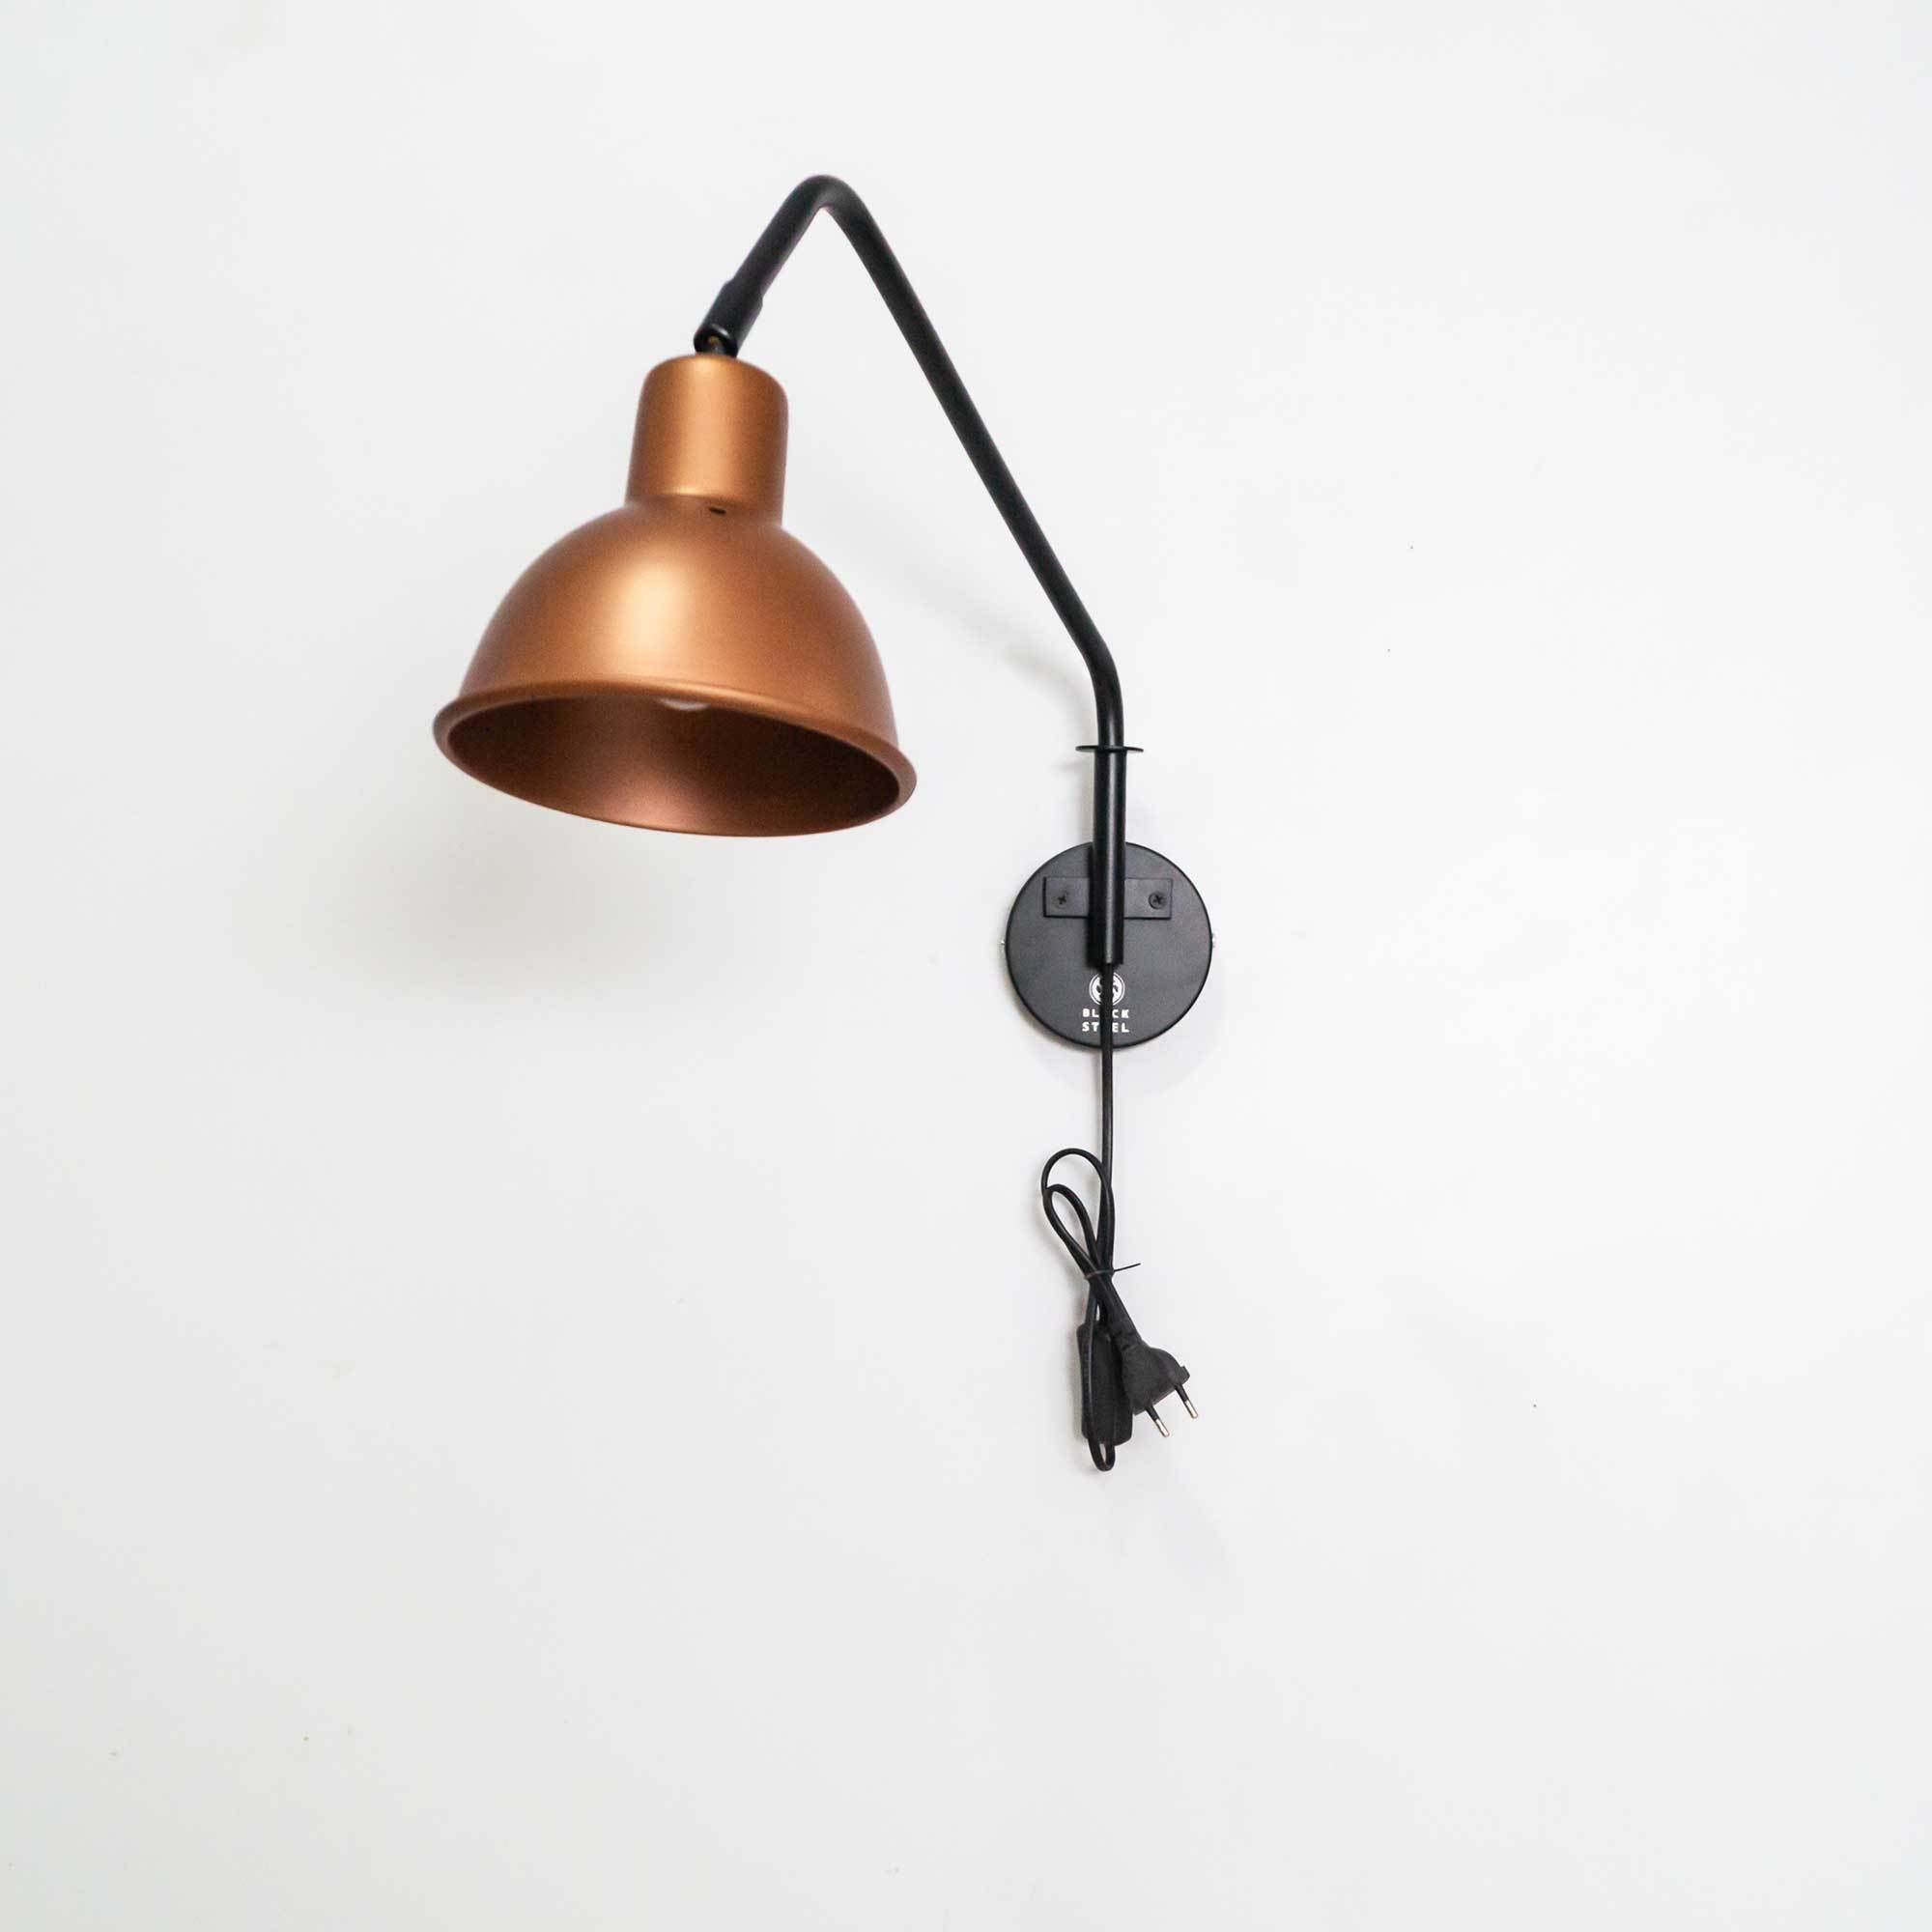 FSW 201 Swivel Arm Wall Mounted Light Fixture - The Black Steel